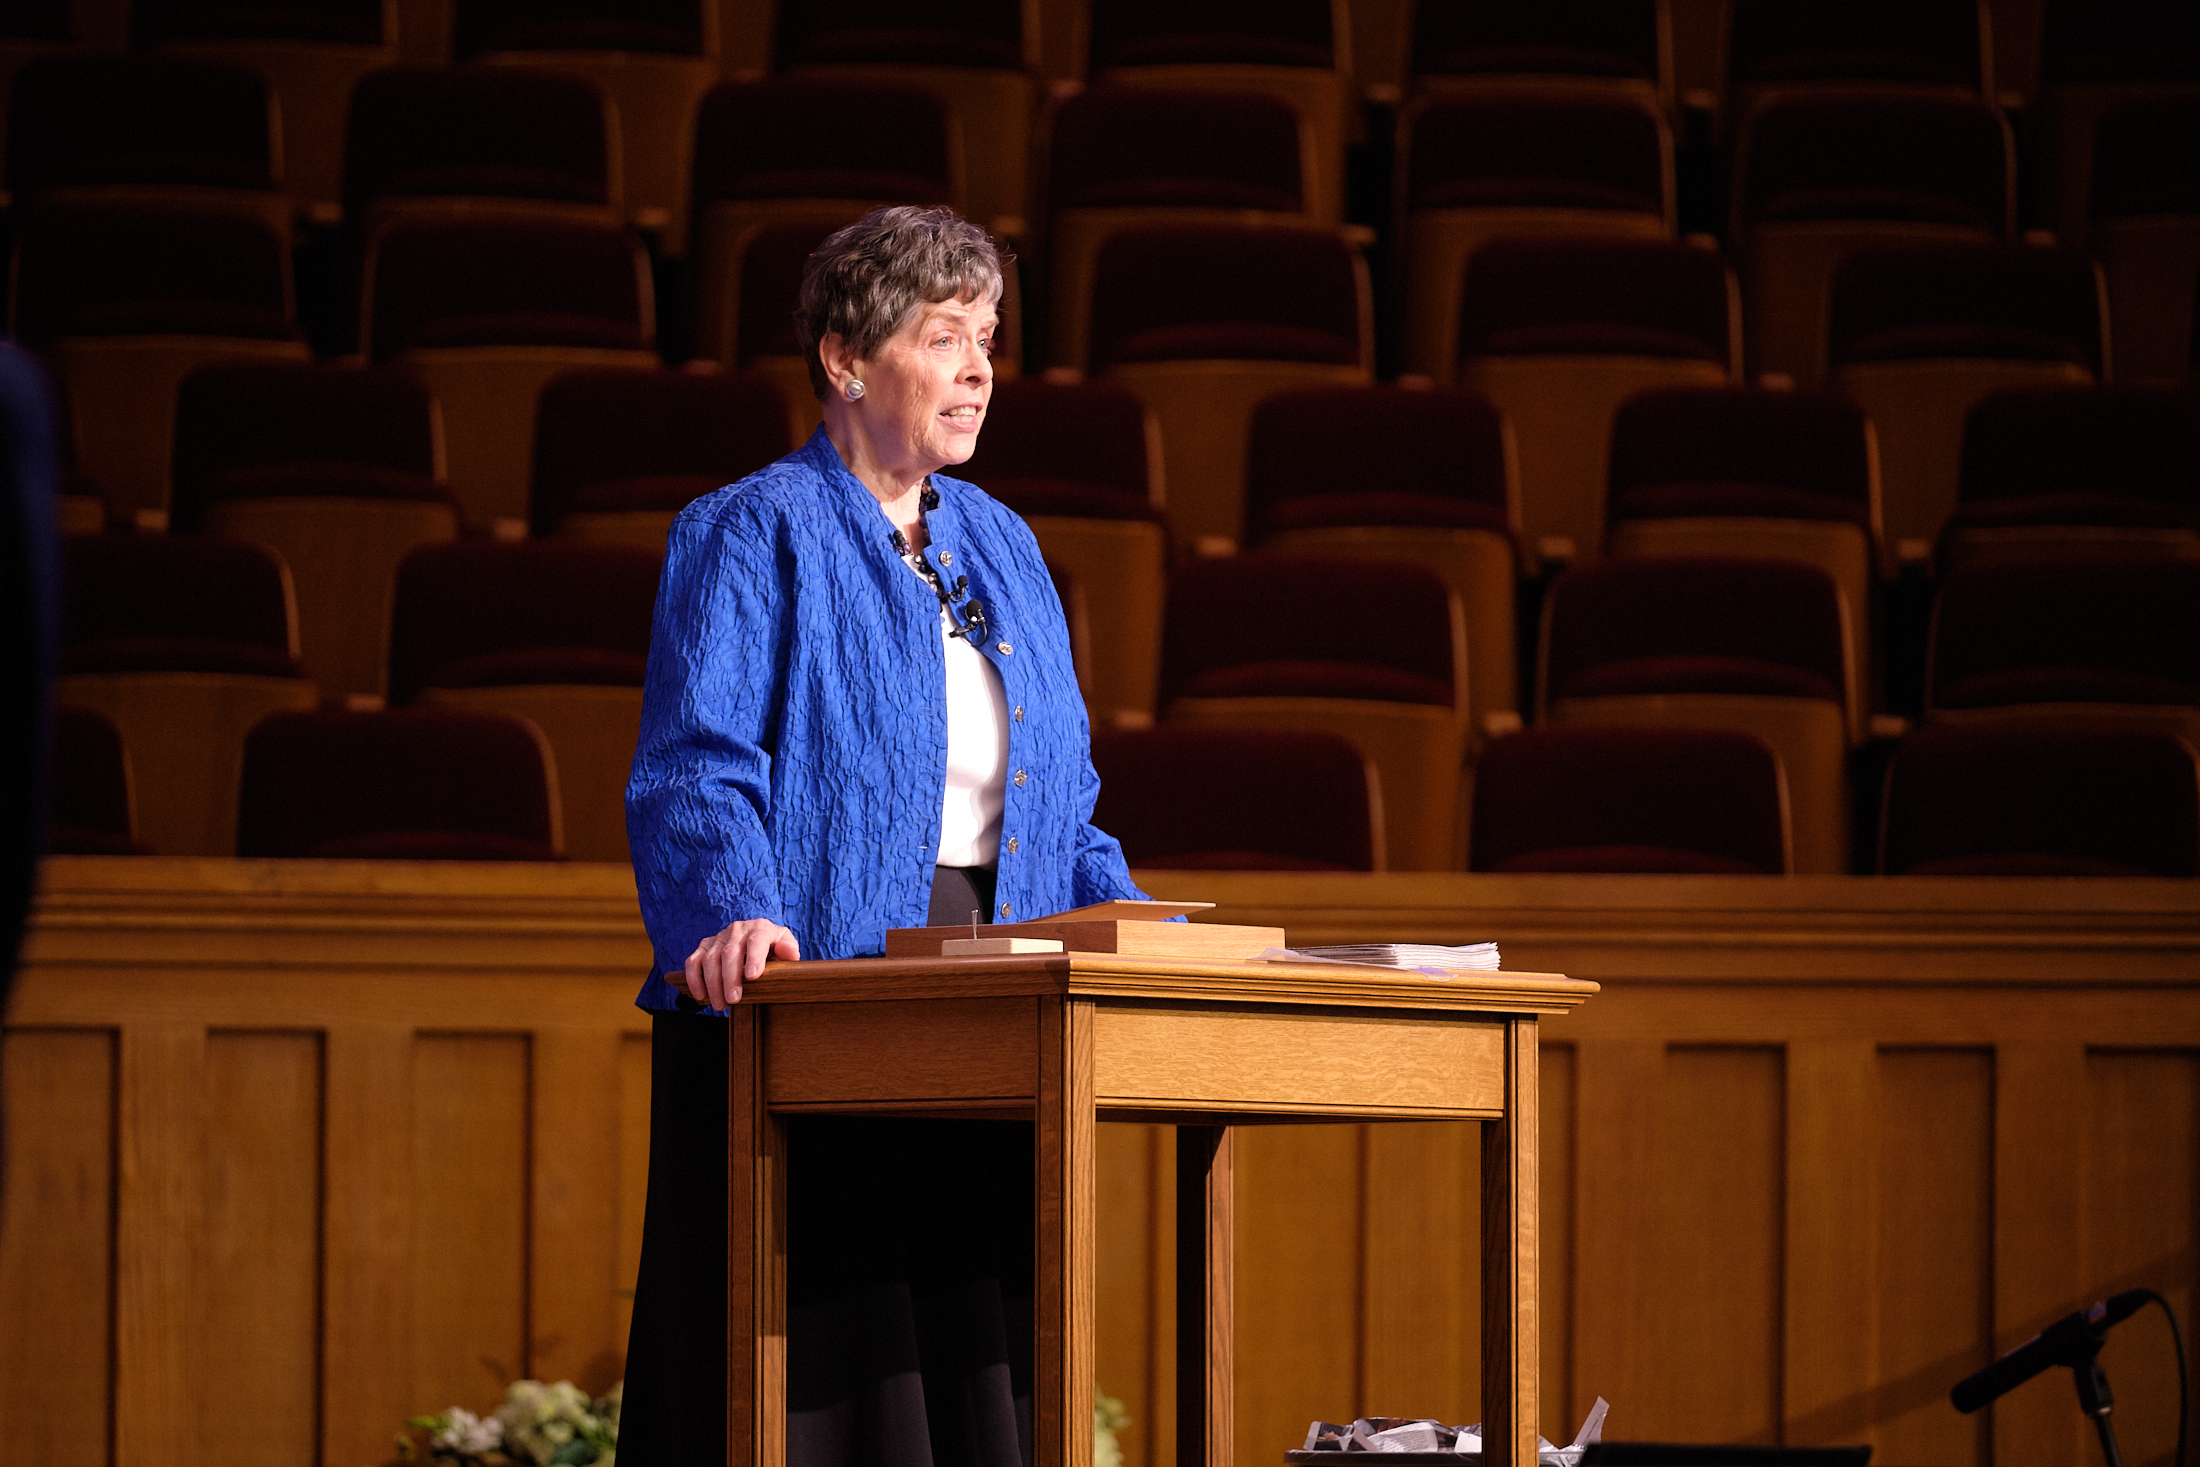 Retiring Temple Square organist Bonnie Goodliffe speaks to the audience before performing in a recital at the Salt Lake Tabernacle on Monday, Oct. 21, 2019.